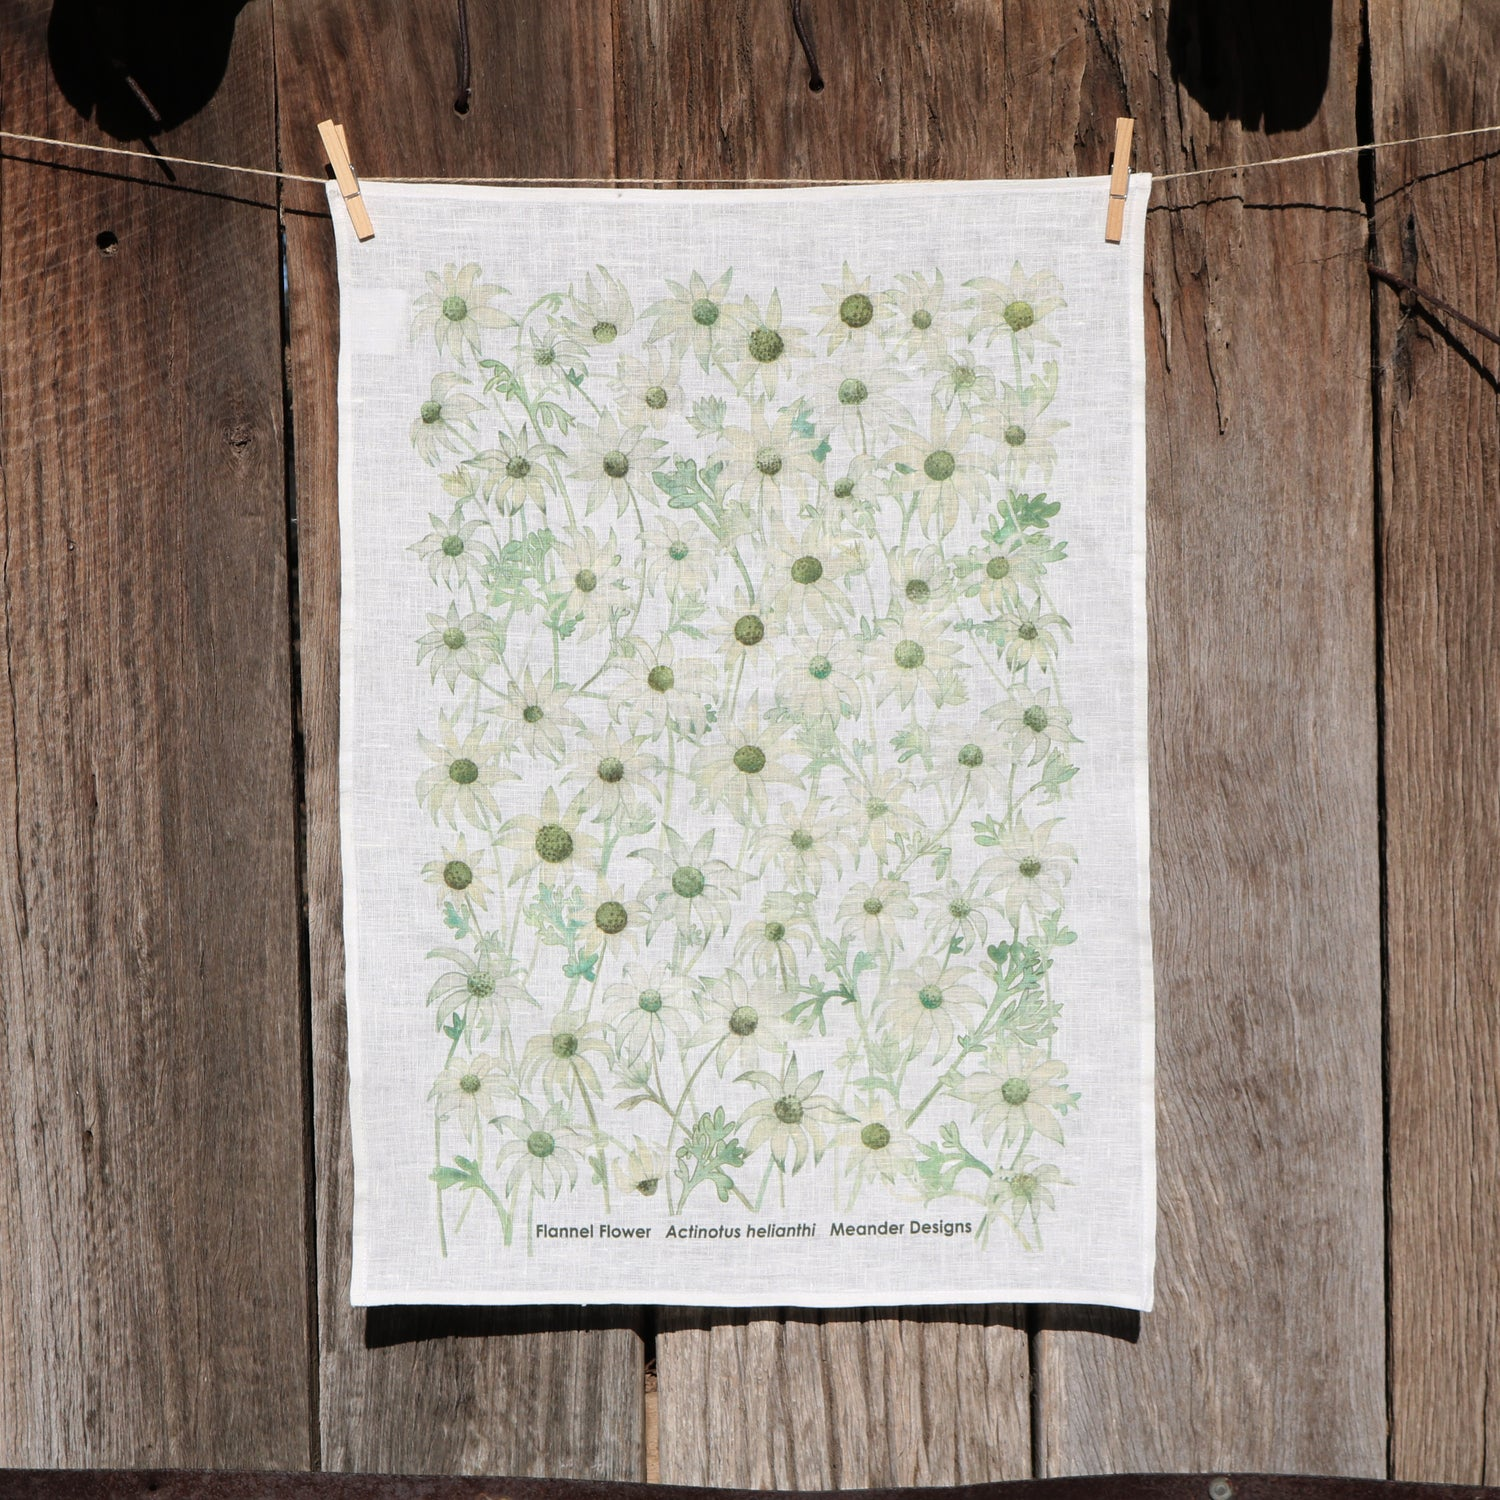 Image of *Preorder* 25% off RRP $35.00 Flannel Flowers 100% Linen Tea Towel